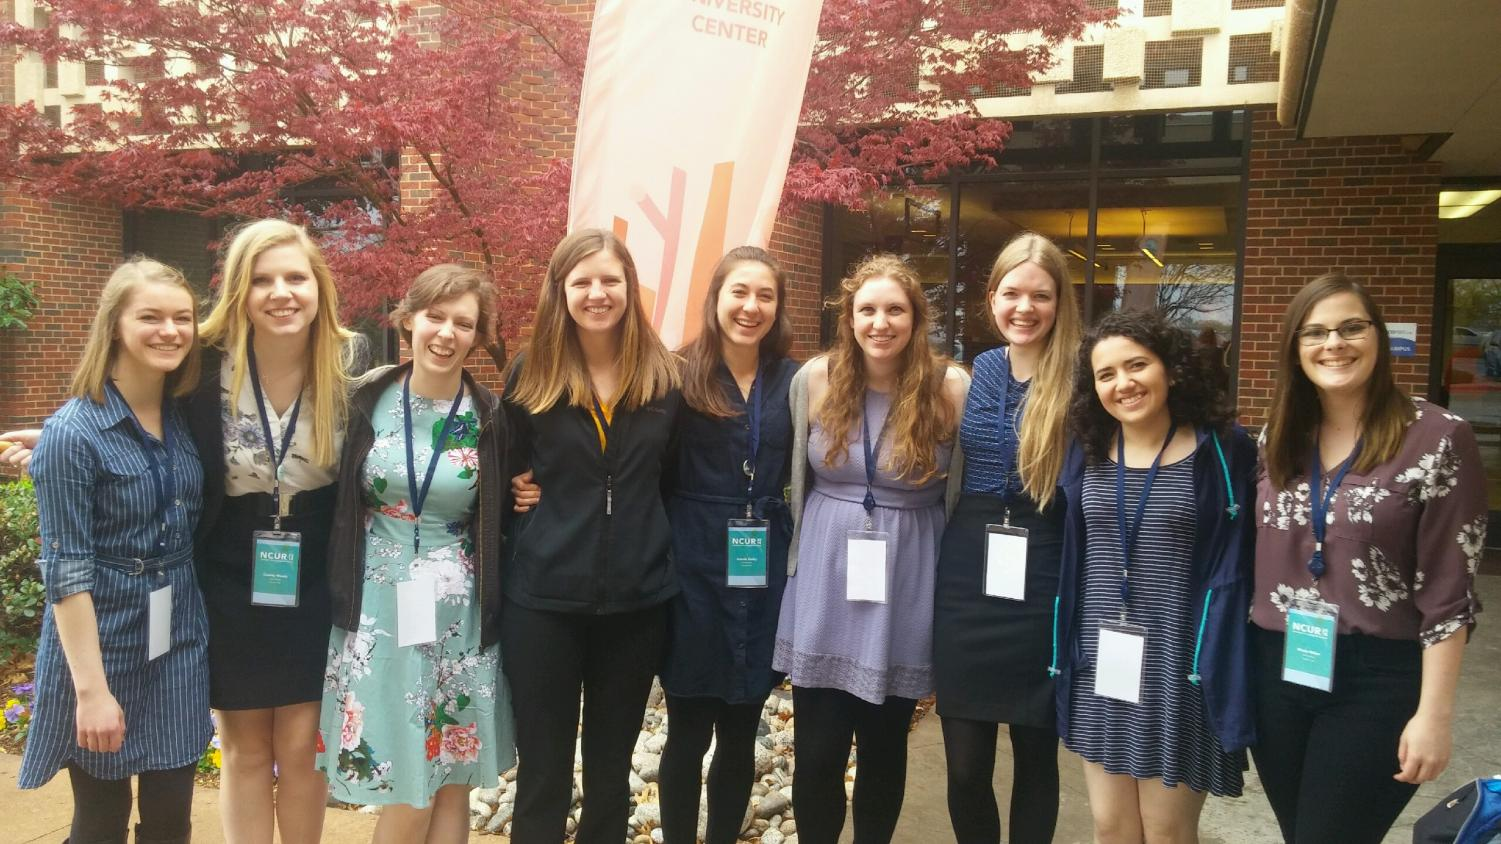 Marta Williams ('19), Cassidy Woods ('18), Lily Kime ('19), Kelly Kennedy ('18), Ananda Easley ('19), Katie Patyk ('18), Kaitlyn Buls ('19), Laila Sahir ('18), and Nicole Weber ('18) attend the National Conference on Undergraduate Research in Oklahoma.